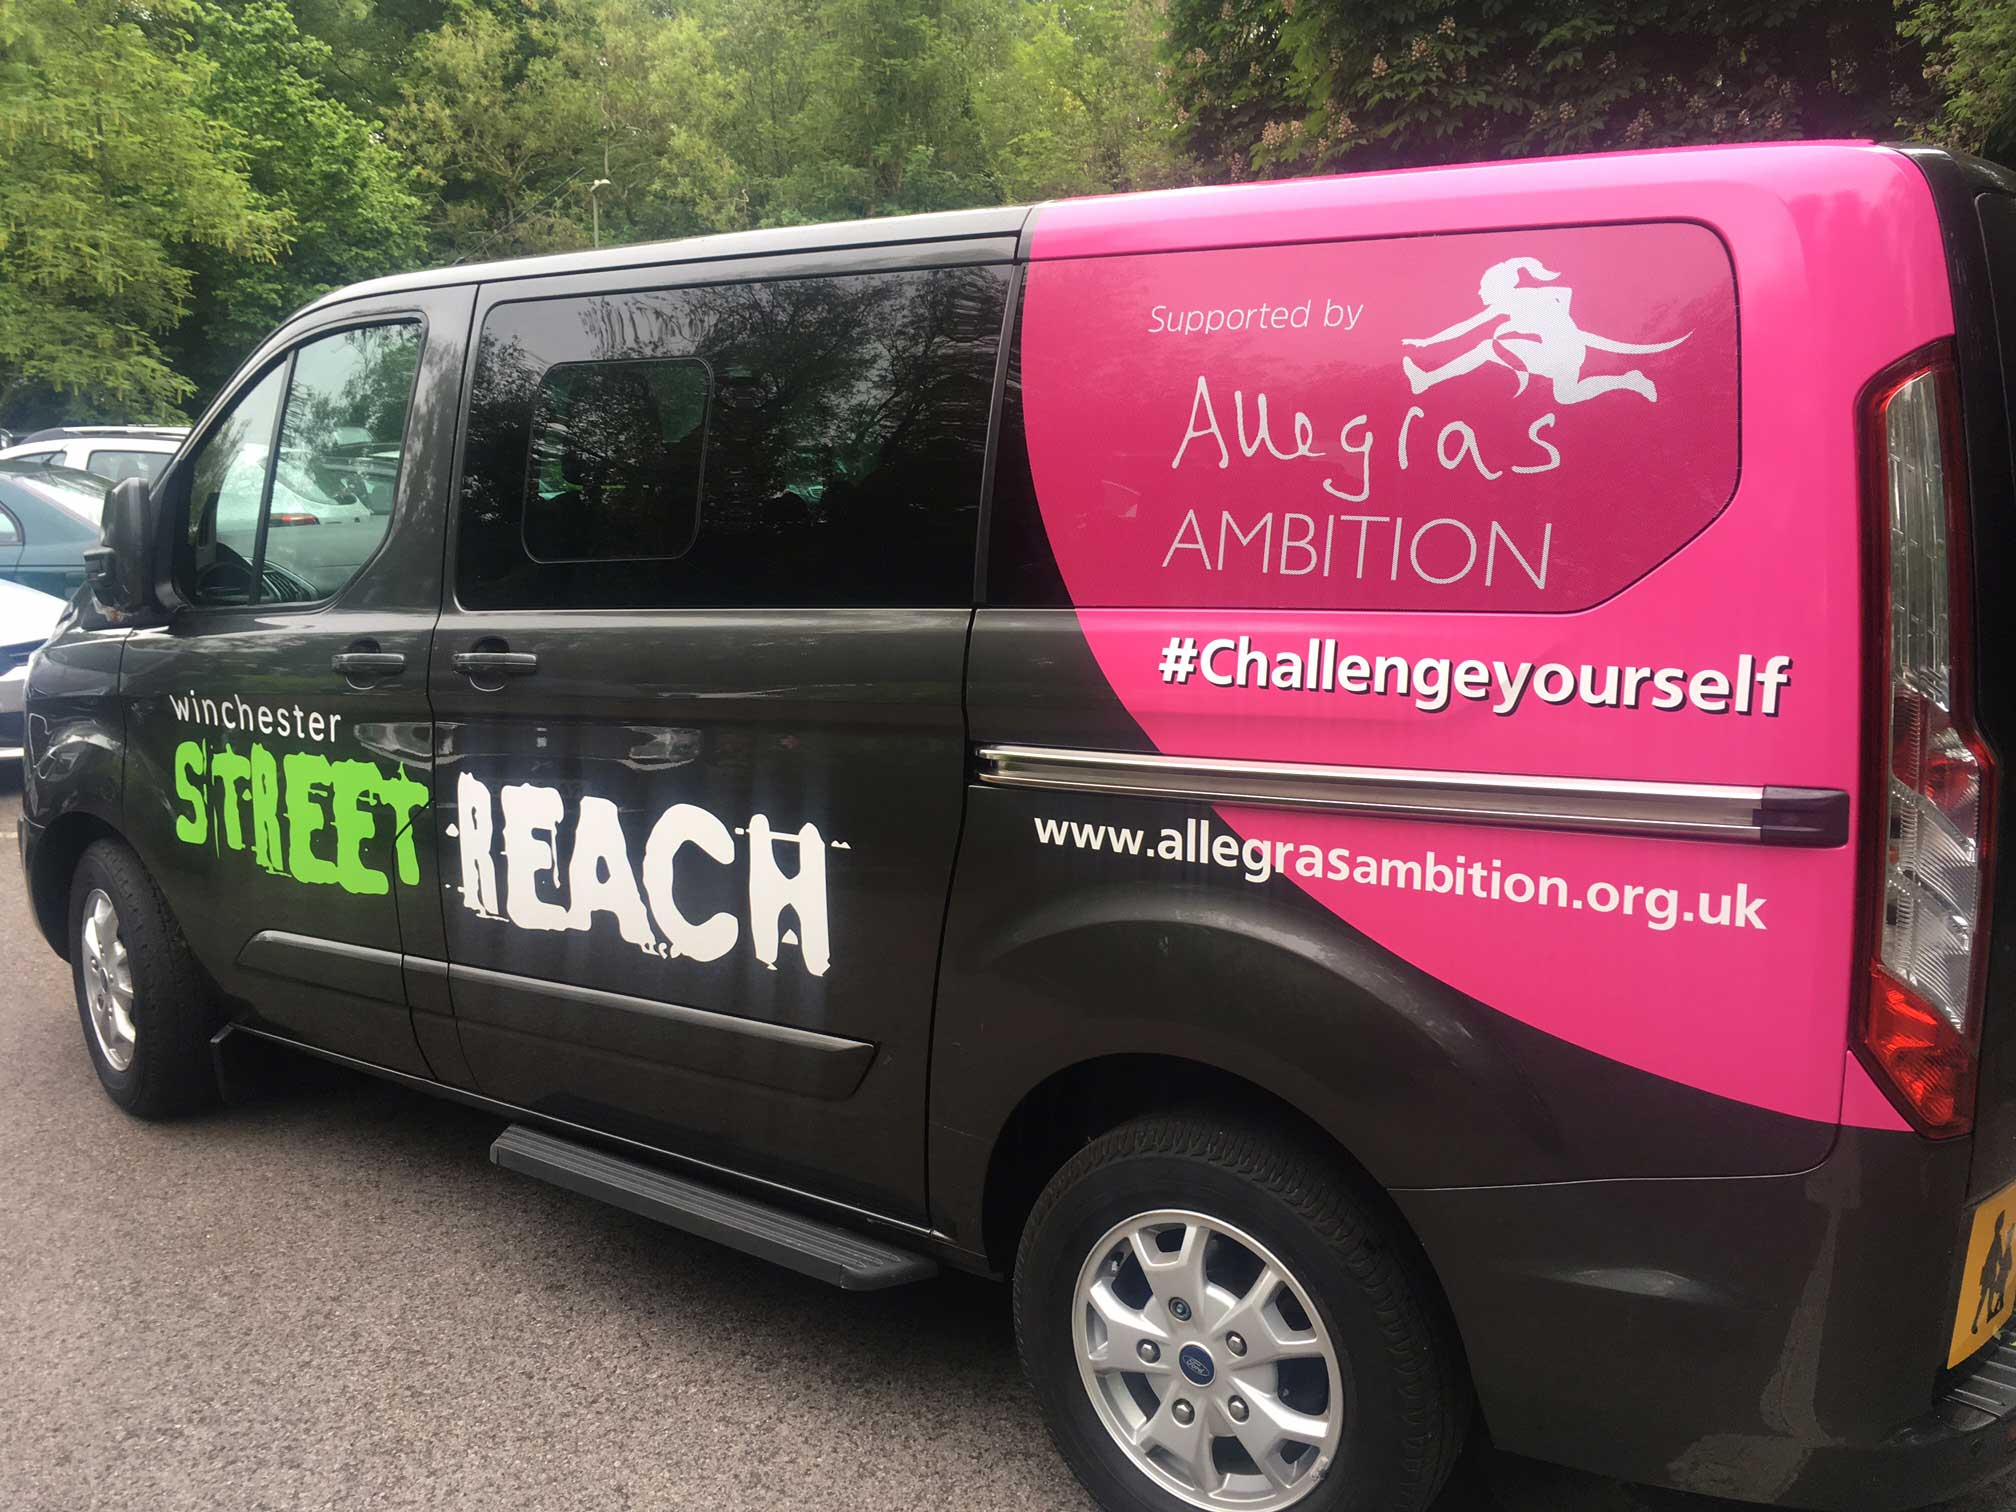 Street Reach - Street Reach works with young people in and around Winchester, Hampshire, with an emphasis on targeting the disadvantaged through outreach youth work.We support a regular Friday night football drop in for young people in Winchester and have funded a much needed minibus.Newsletters